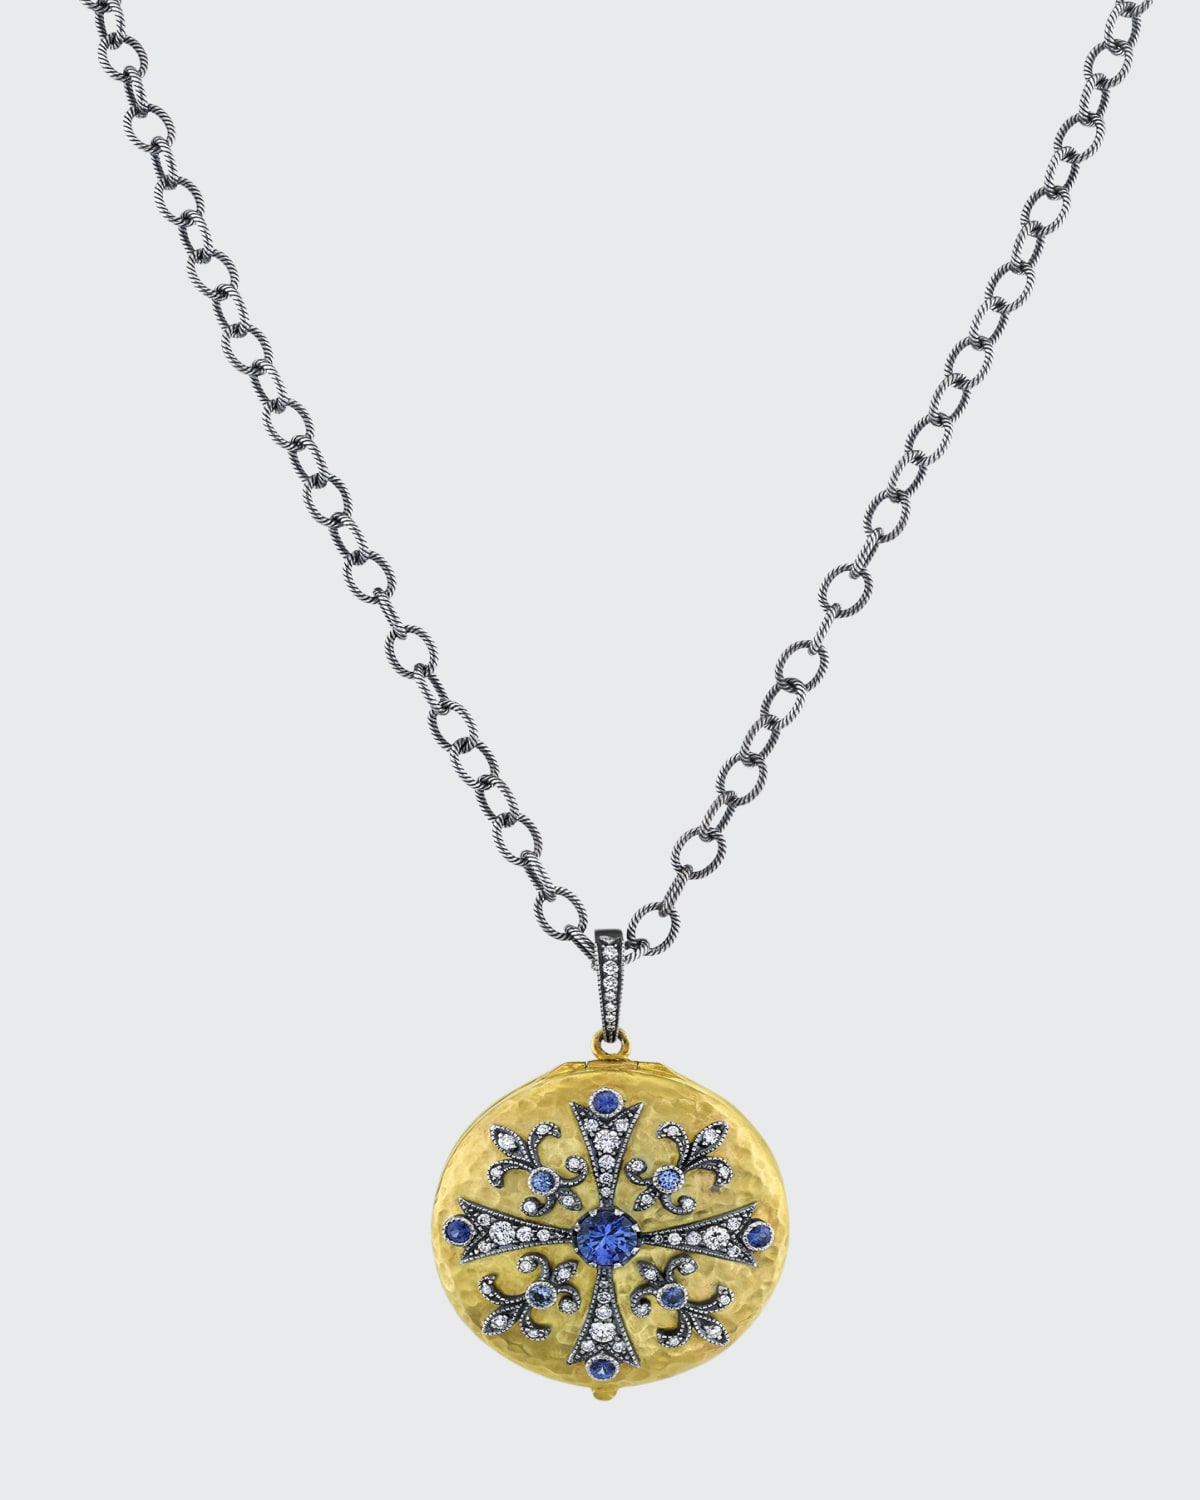 Le Medallion Large Round Locket with Diamond and Sapphire Cross